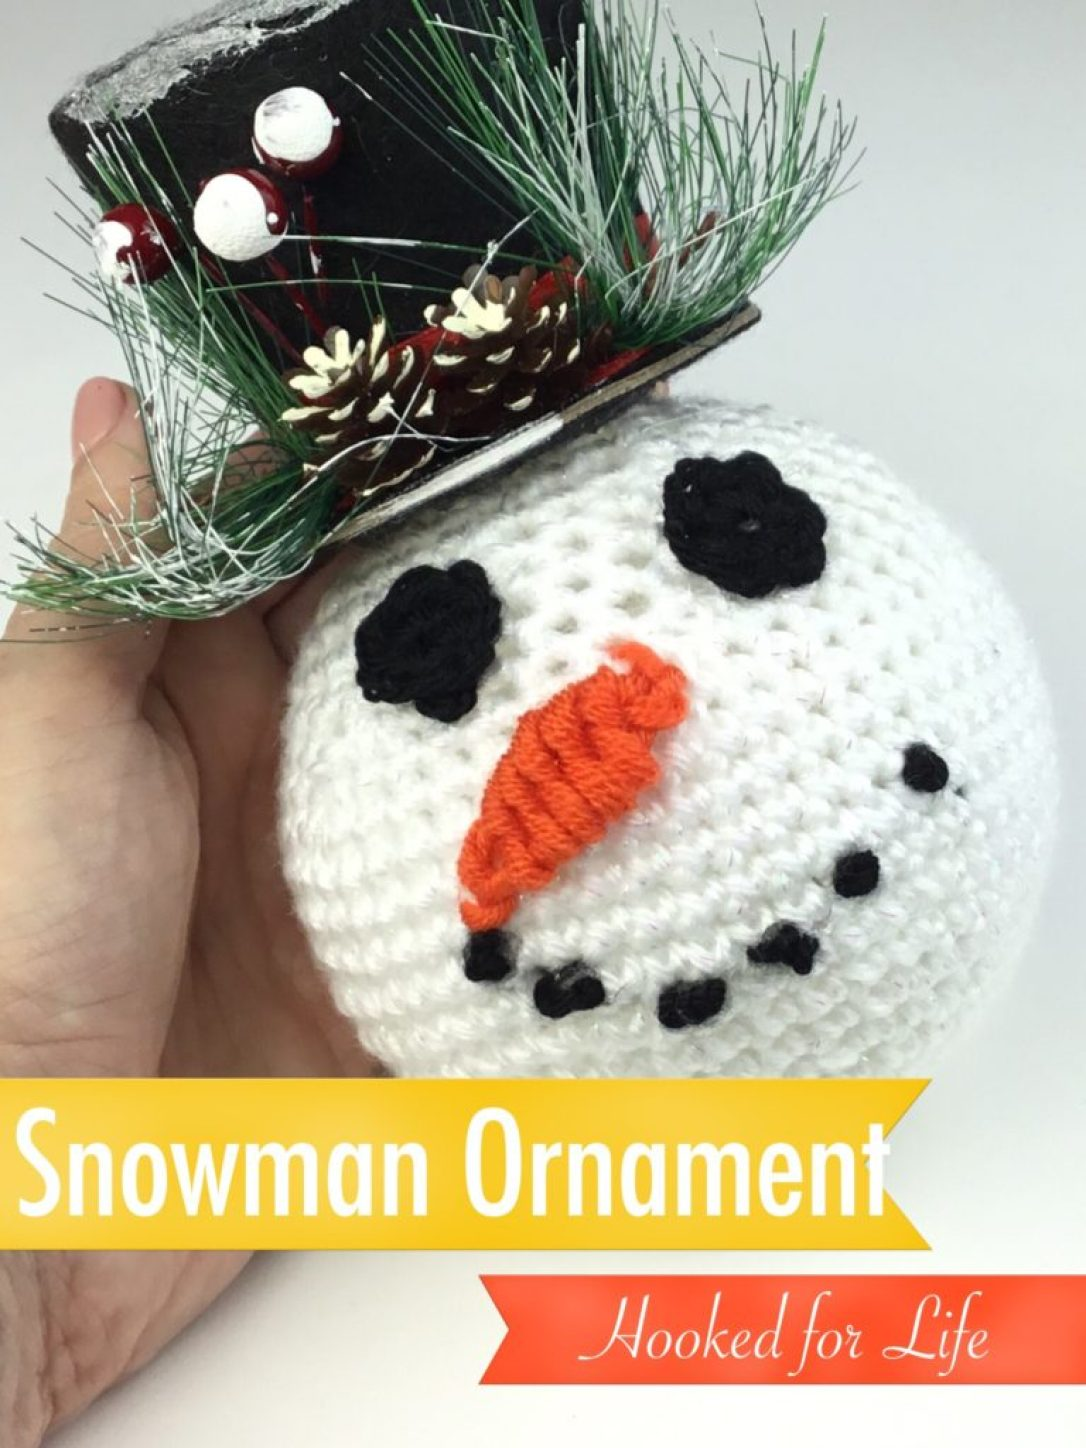 Free crochet pattern for Snowman Ornament. Dollar store parts and scrap yarn make this an inexpensive yet adorable project! #freecrochetpattern #crochet #christmas #christmasornament